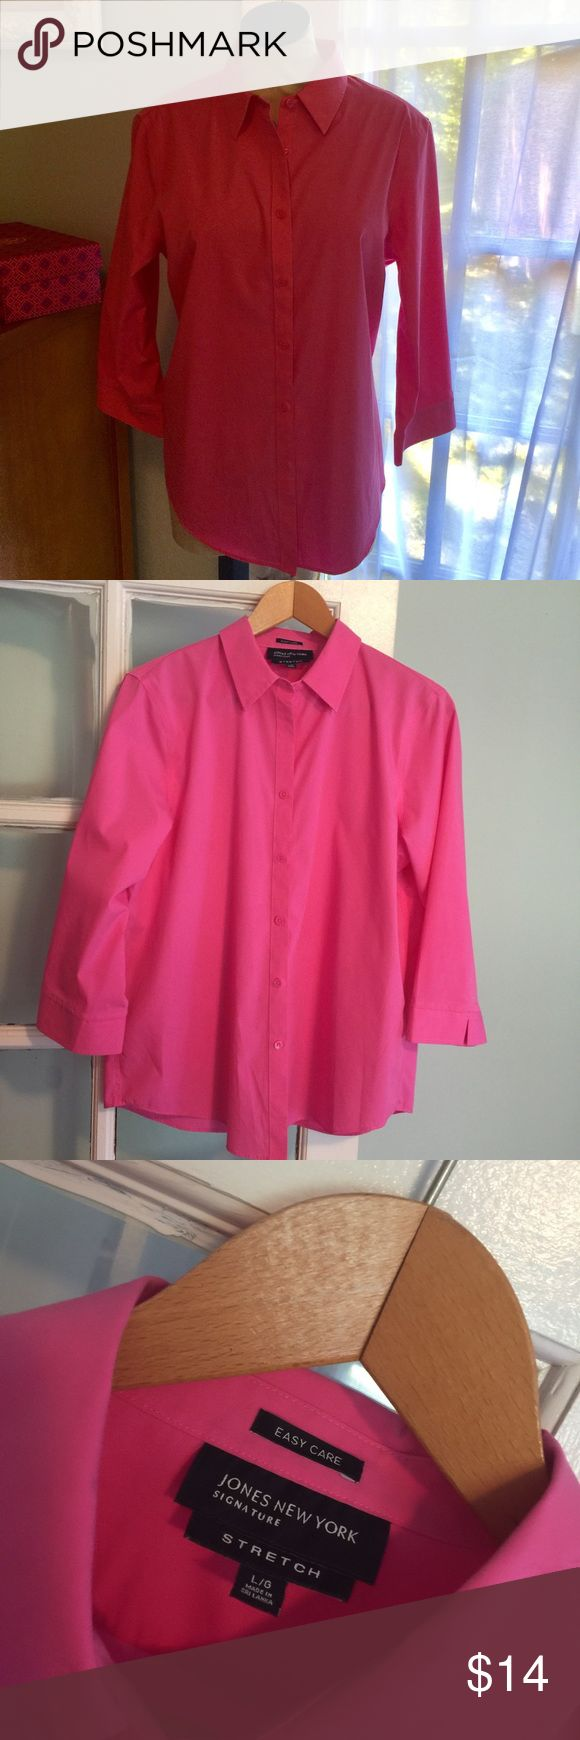 ❤️Lowest💲Donating❤Jones New York Pink Jones New York Pink Stretch Button Up Size L, in excellent pre loved condition, quarter length sleeves and cute lipstick pink color Jones New York Tops